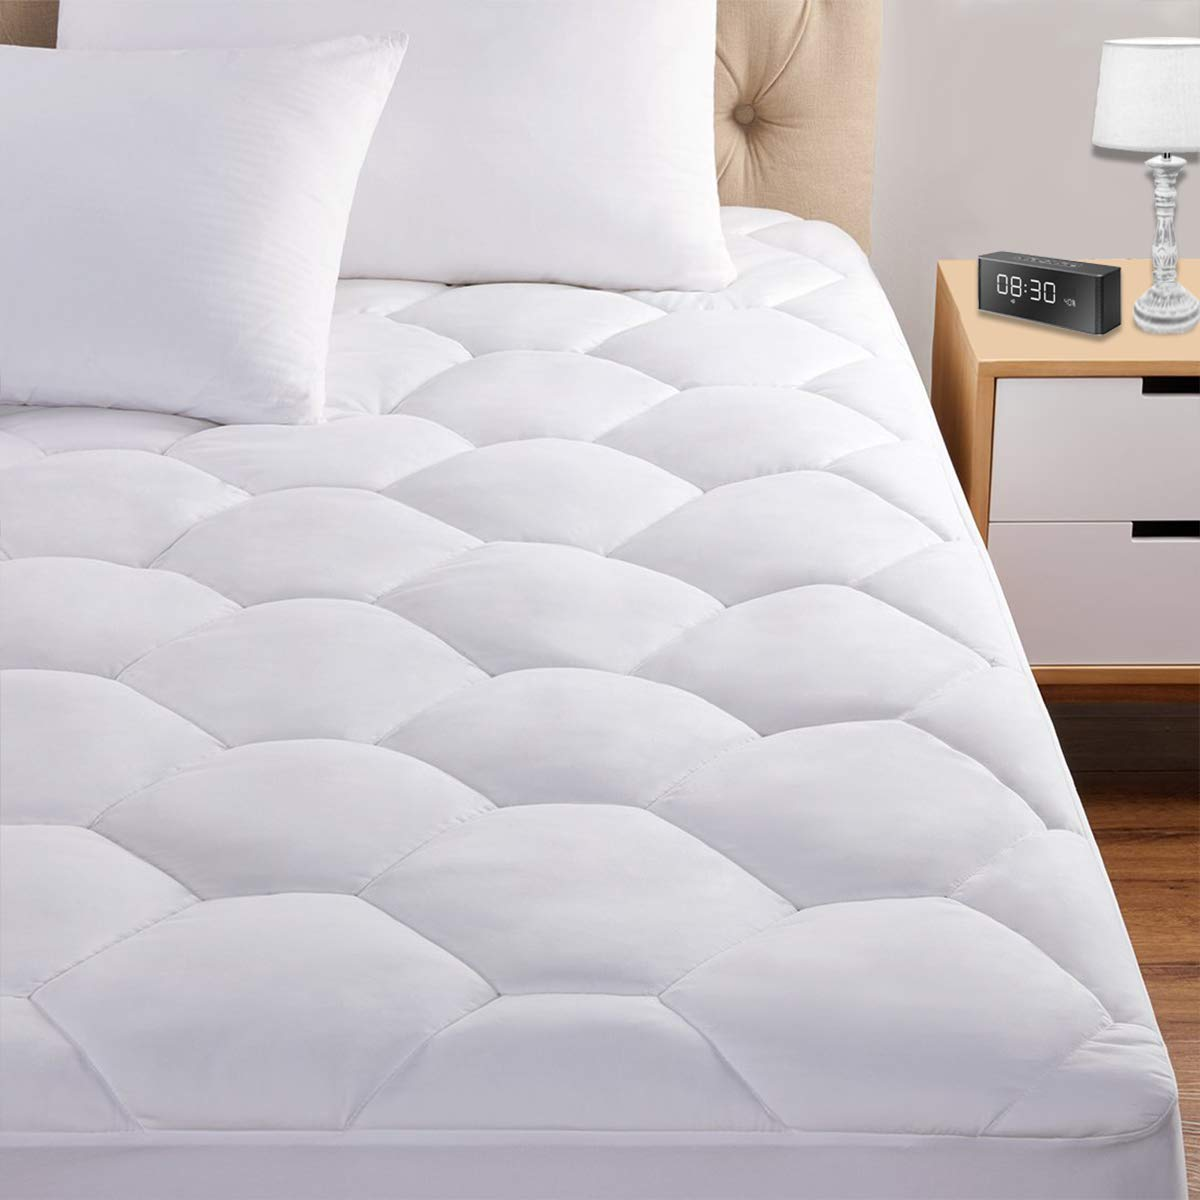 "King Mattress Pad, 8-21"" Deep Pocket Protector Ultra Soft Quilted Fitted Topper Cover Fit for Dorm Home Hotel -White"